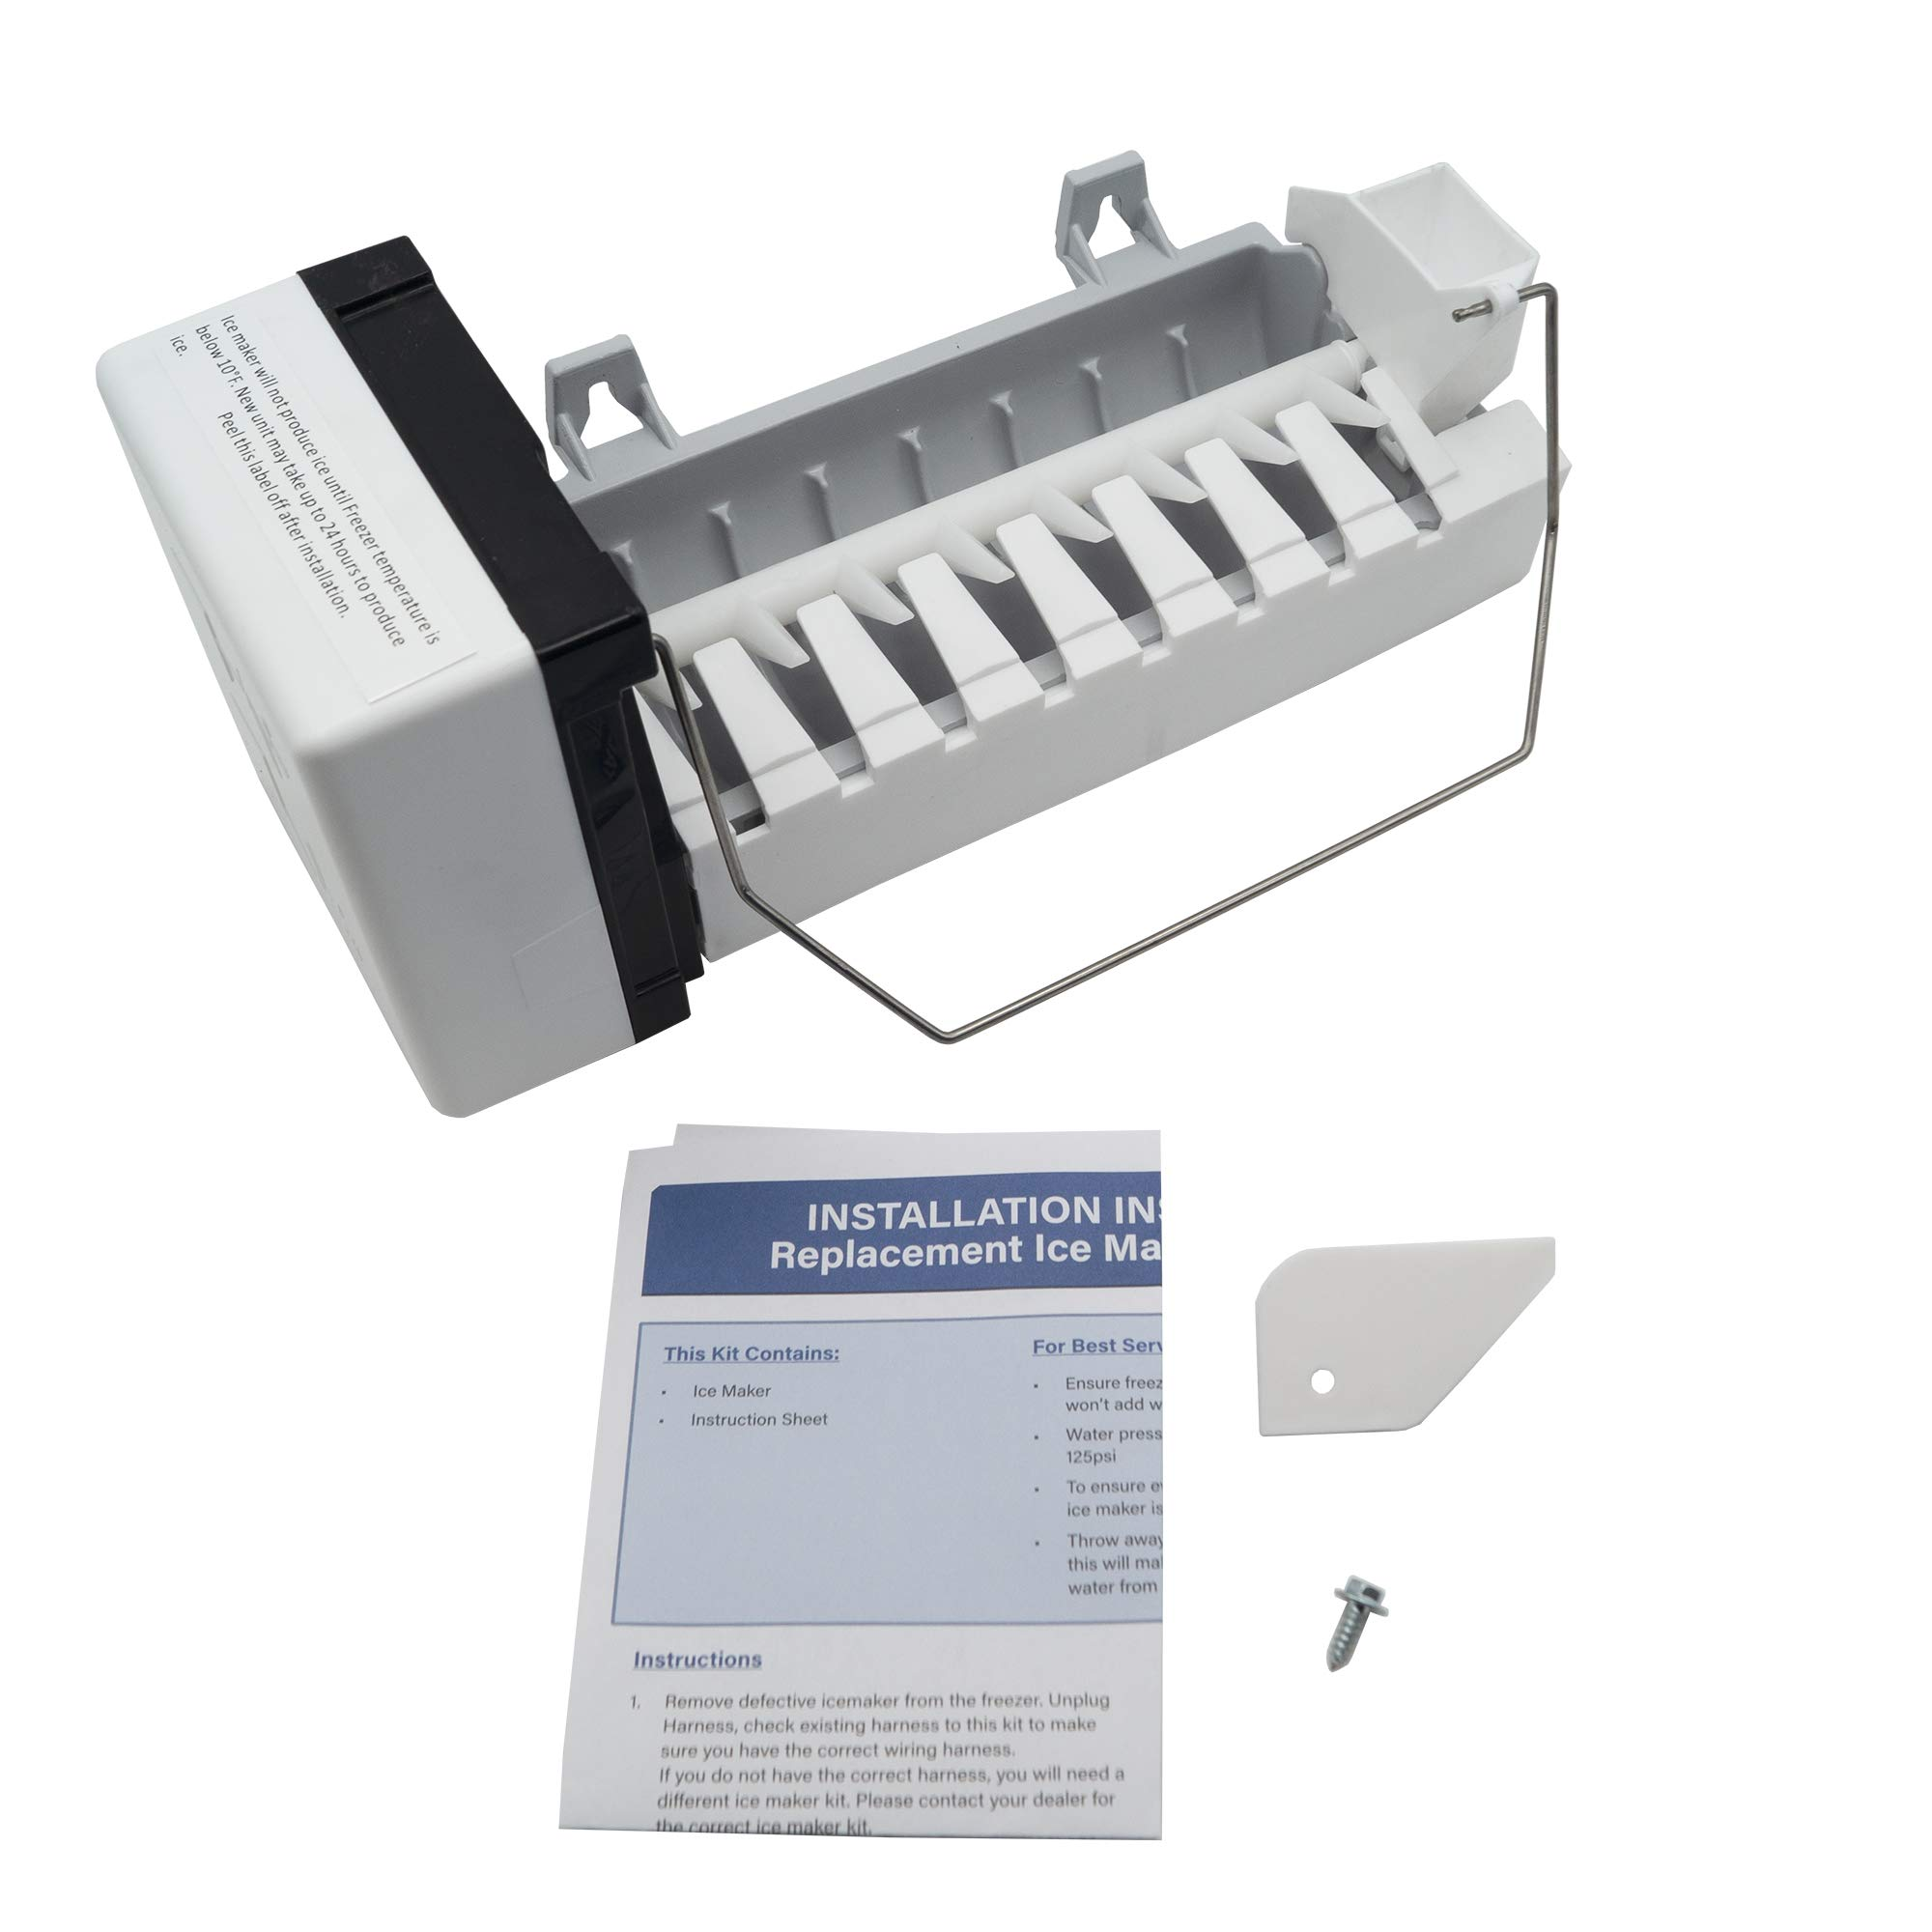 Supplying Demand D7824706Q Ice Maker Compatible With Whirlpool Fits 0056504, 0056599